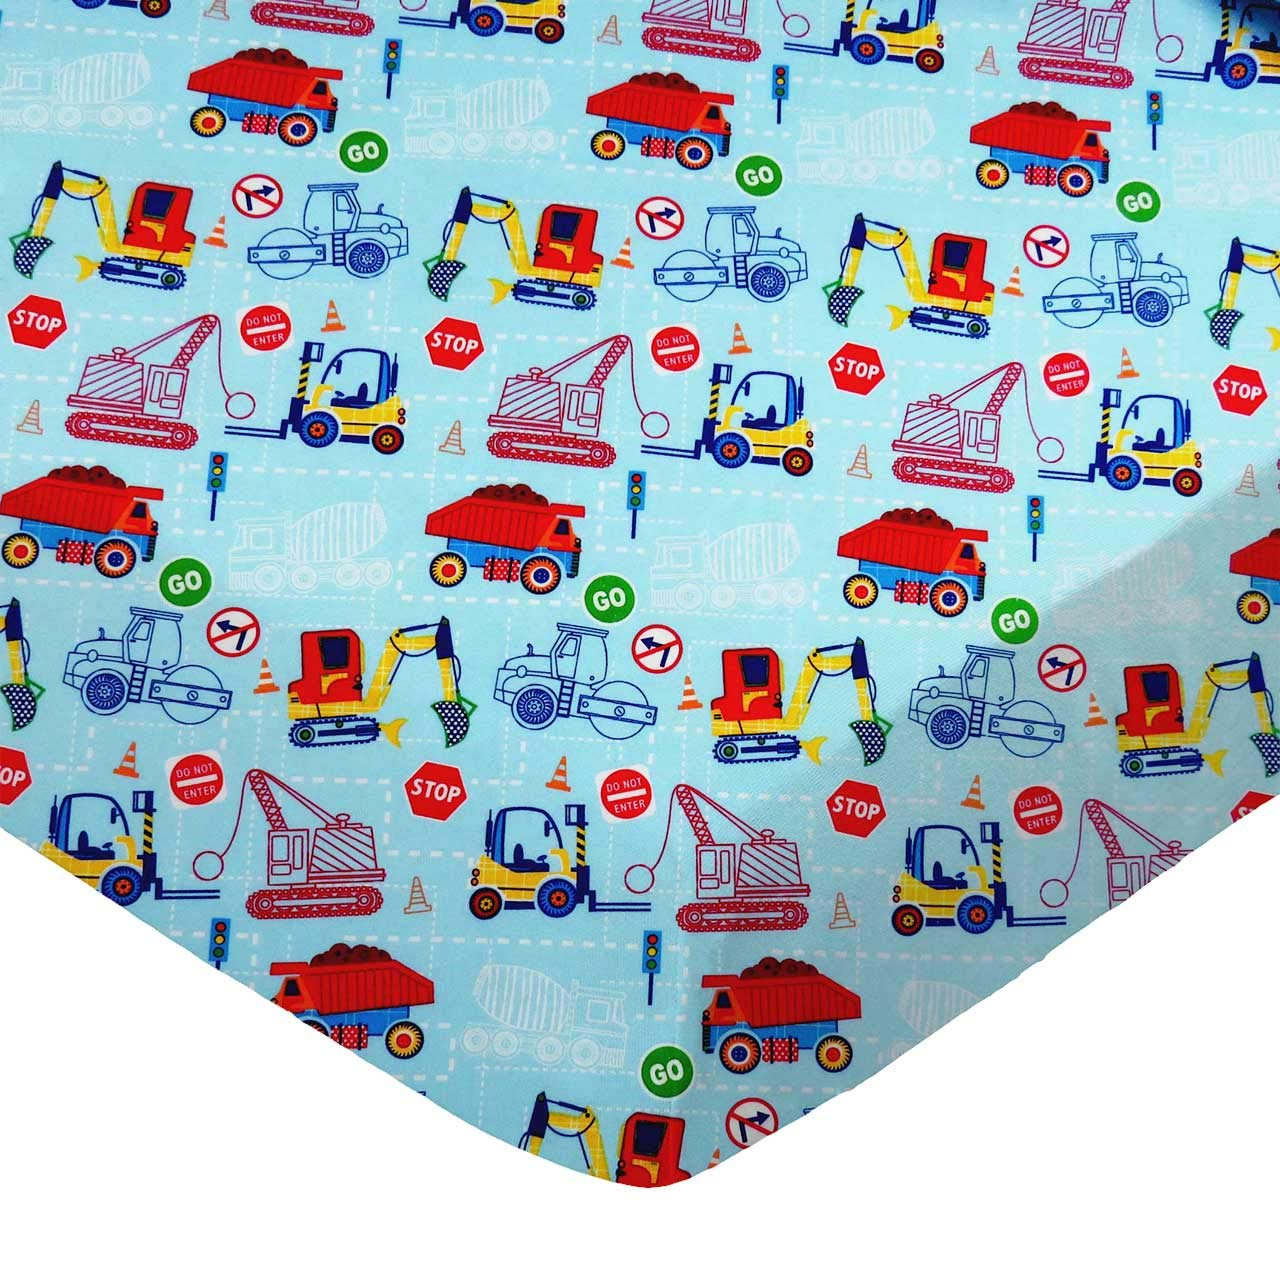 Made in USA Airplanes Yellow SheetWorld Fitted 100/% Cotton Percale Pack N Play Sheet Fits Graco Square Play Yard 36 x 36